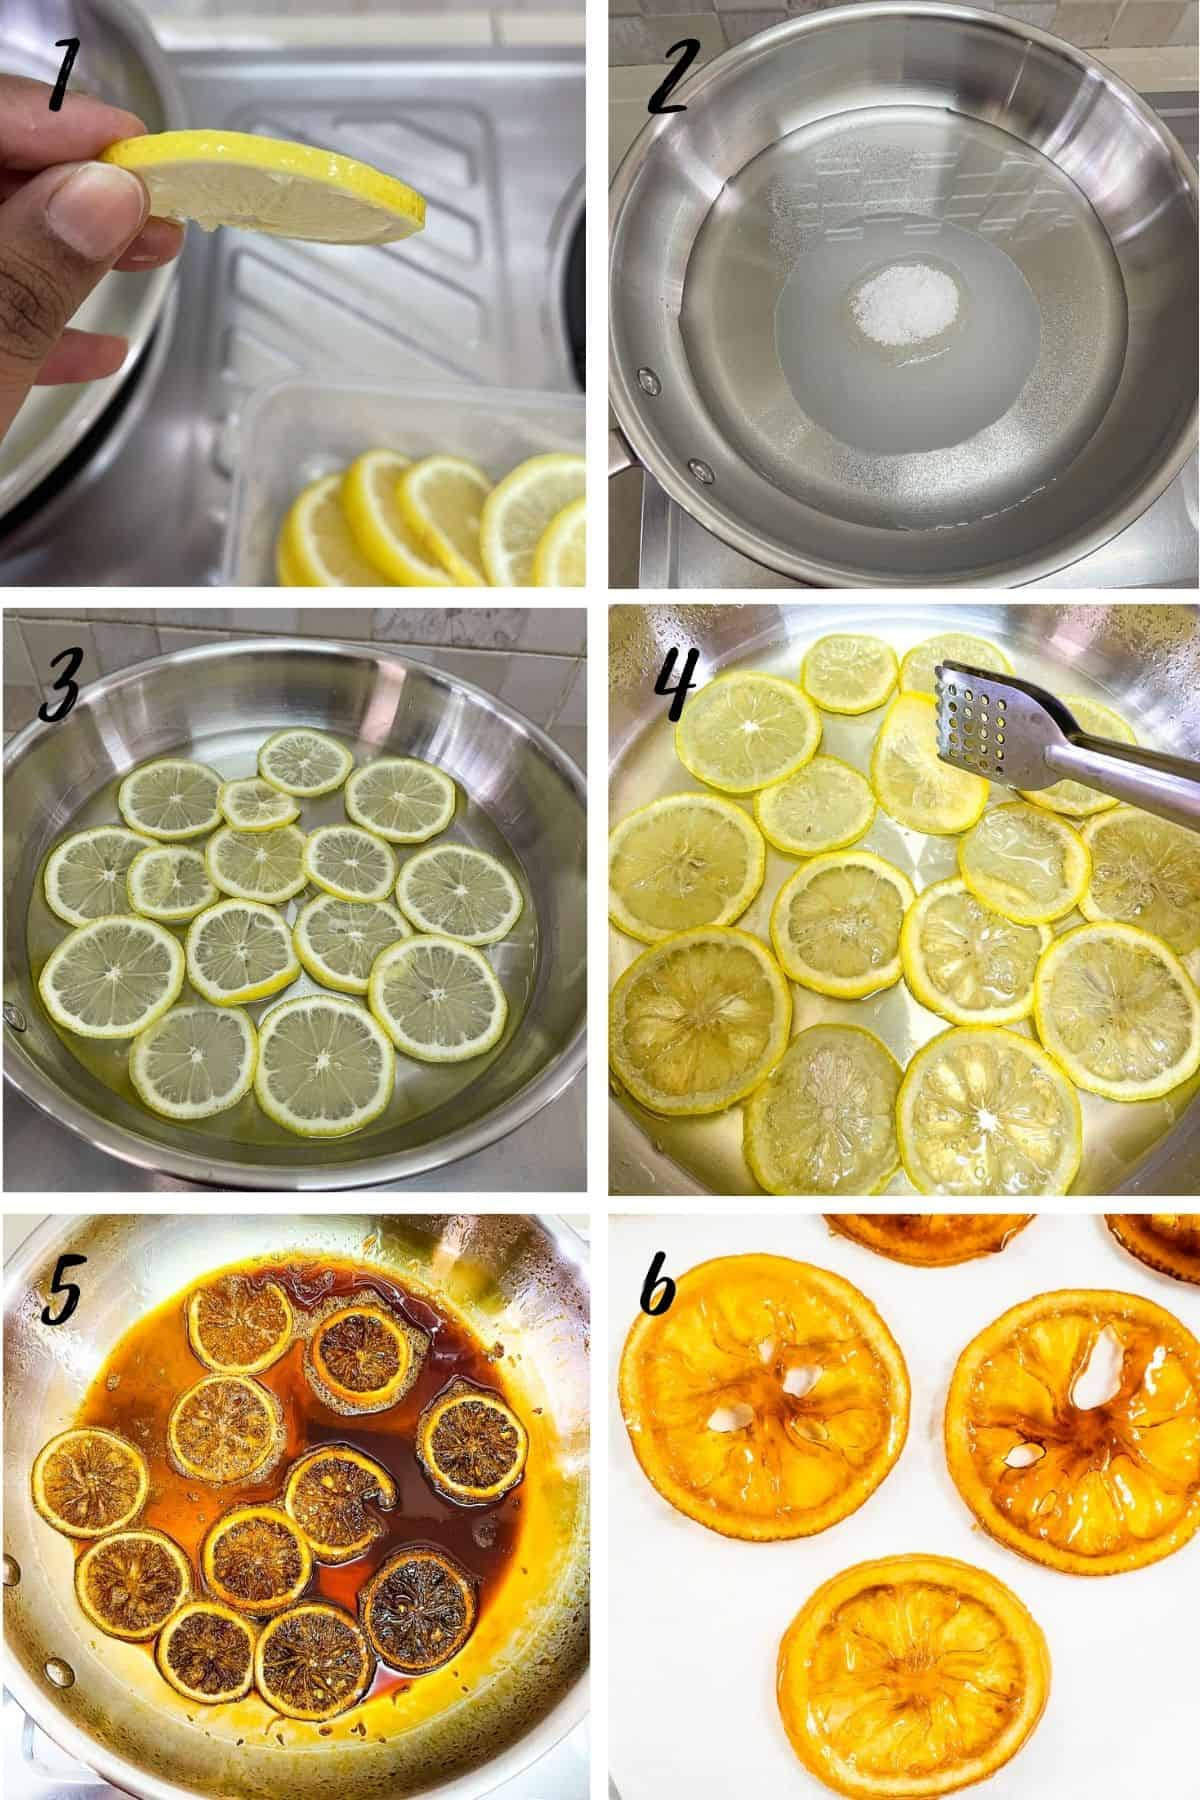 A poster of 6 images showing how to make caramelized lemon slices